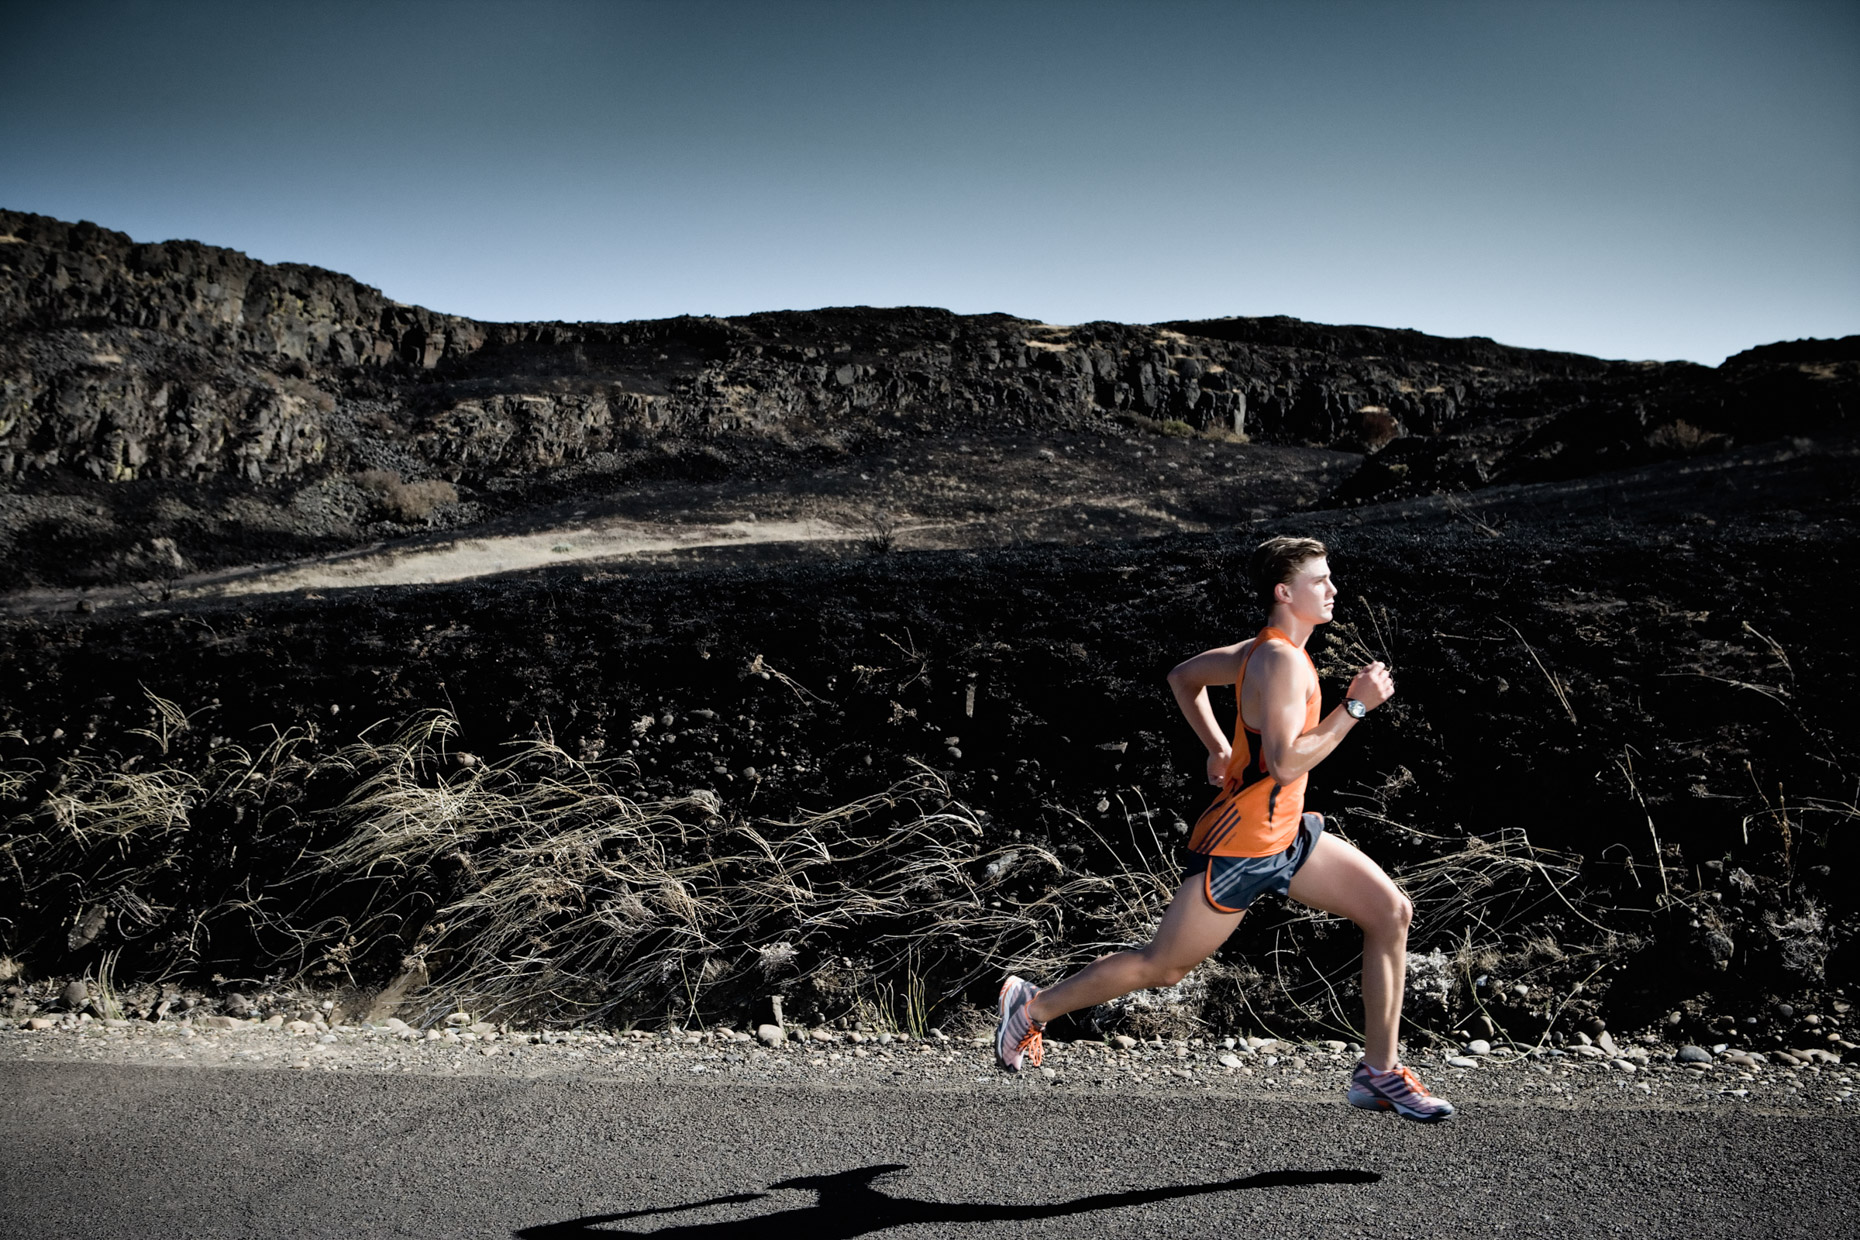 desert running and training for marathon sports by dramatic sport photographer Andy Batt